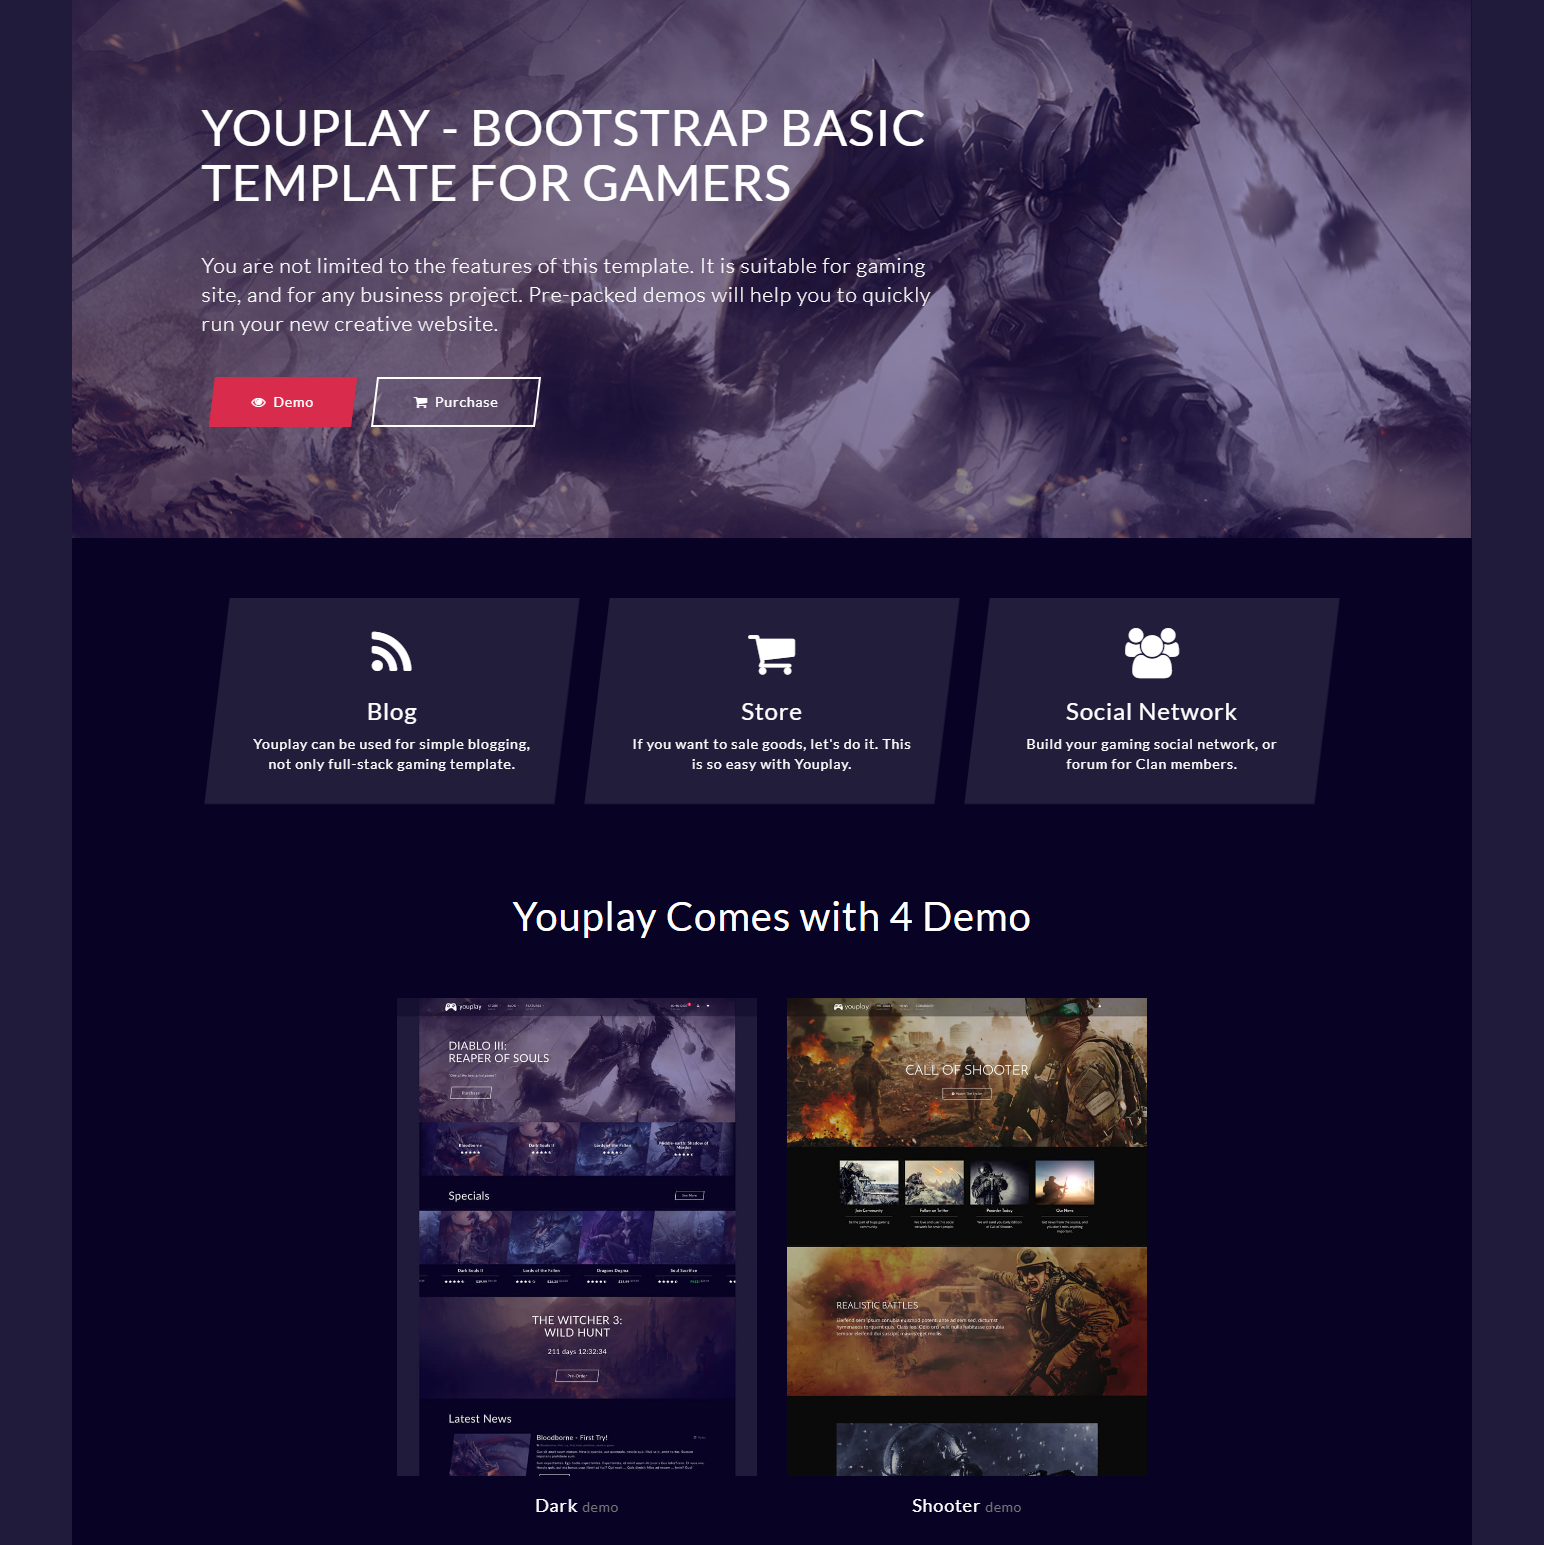 Free Bootstrap Basic Templates